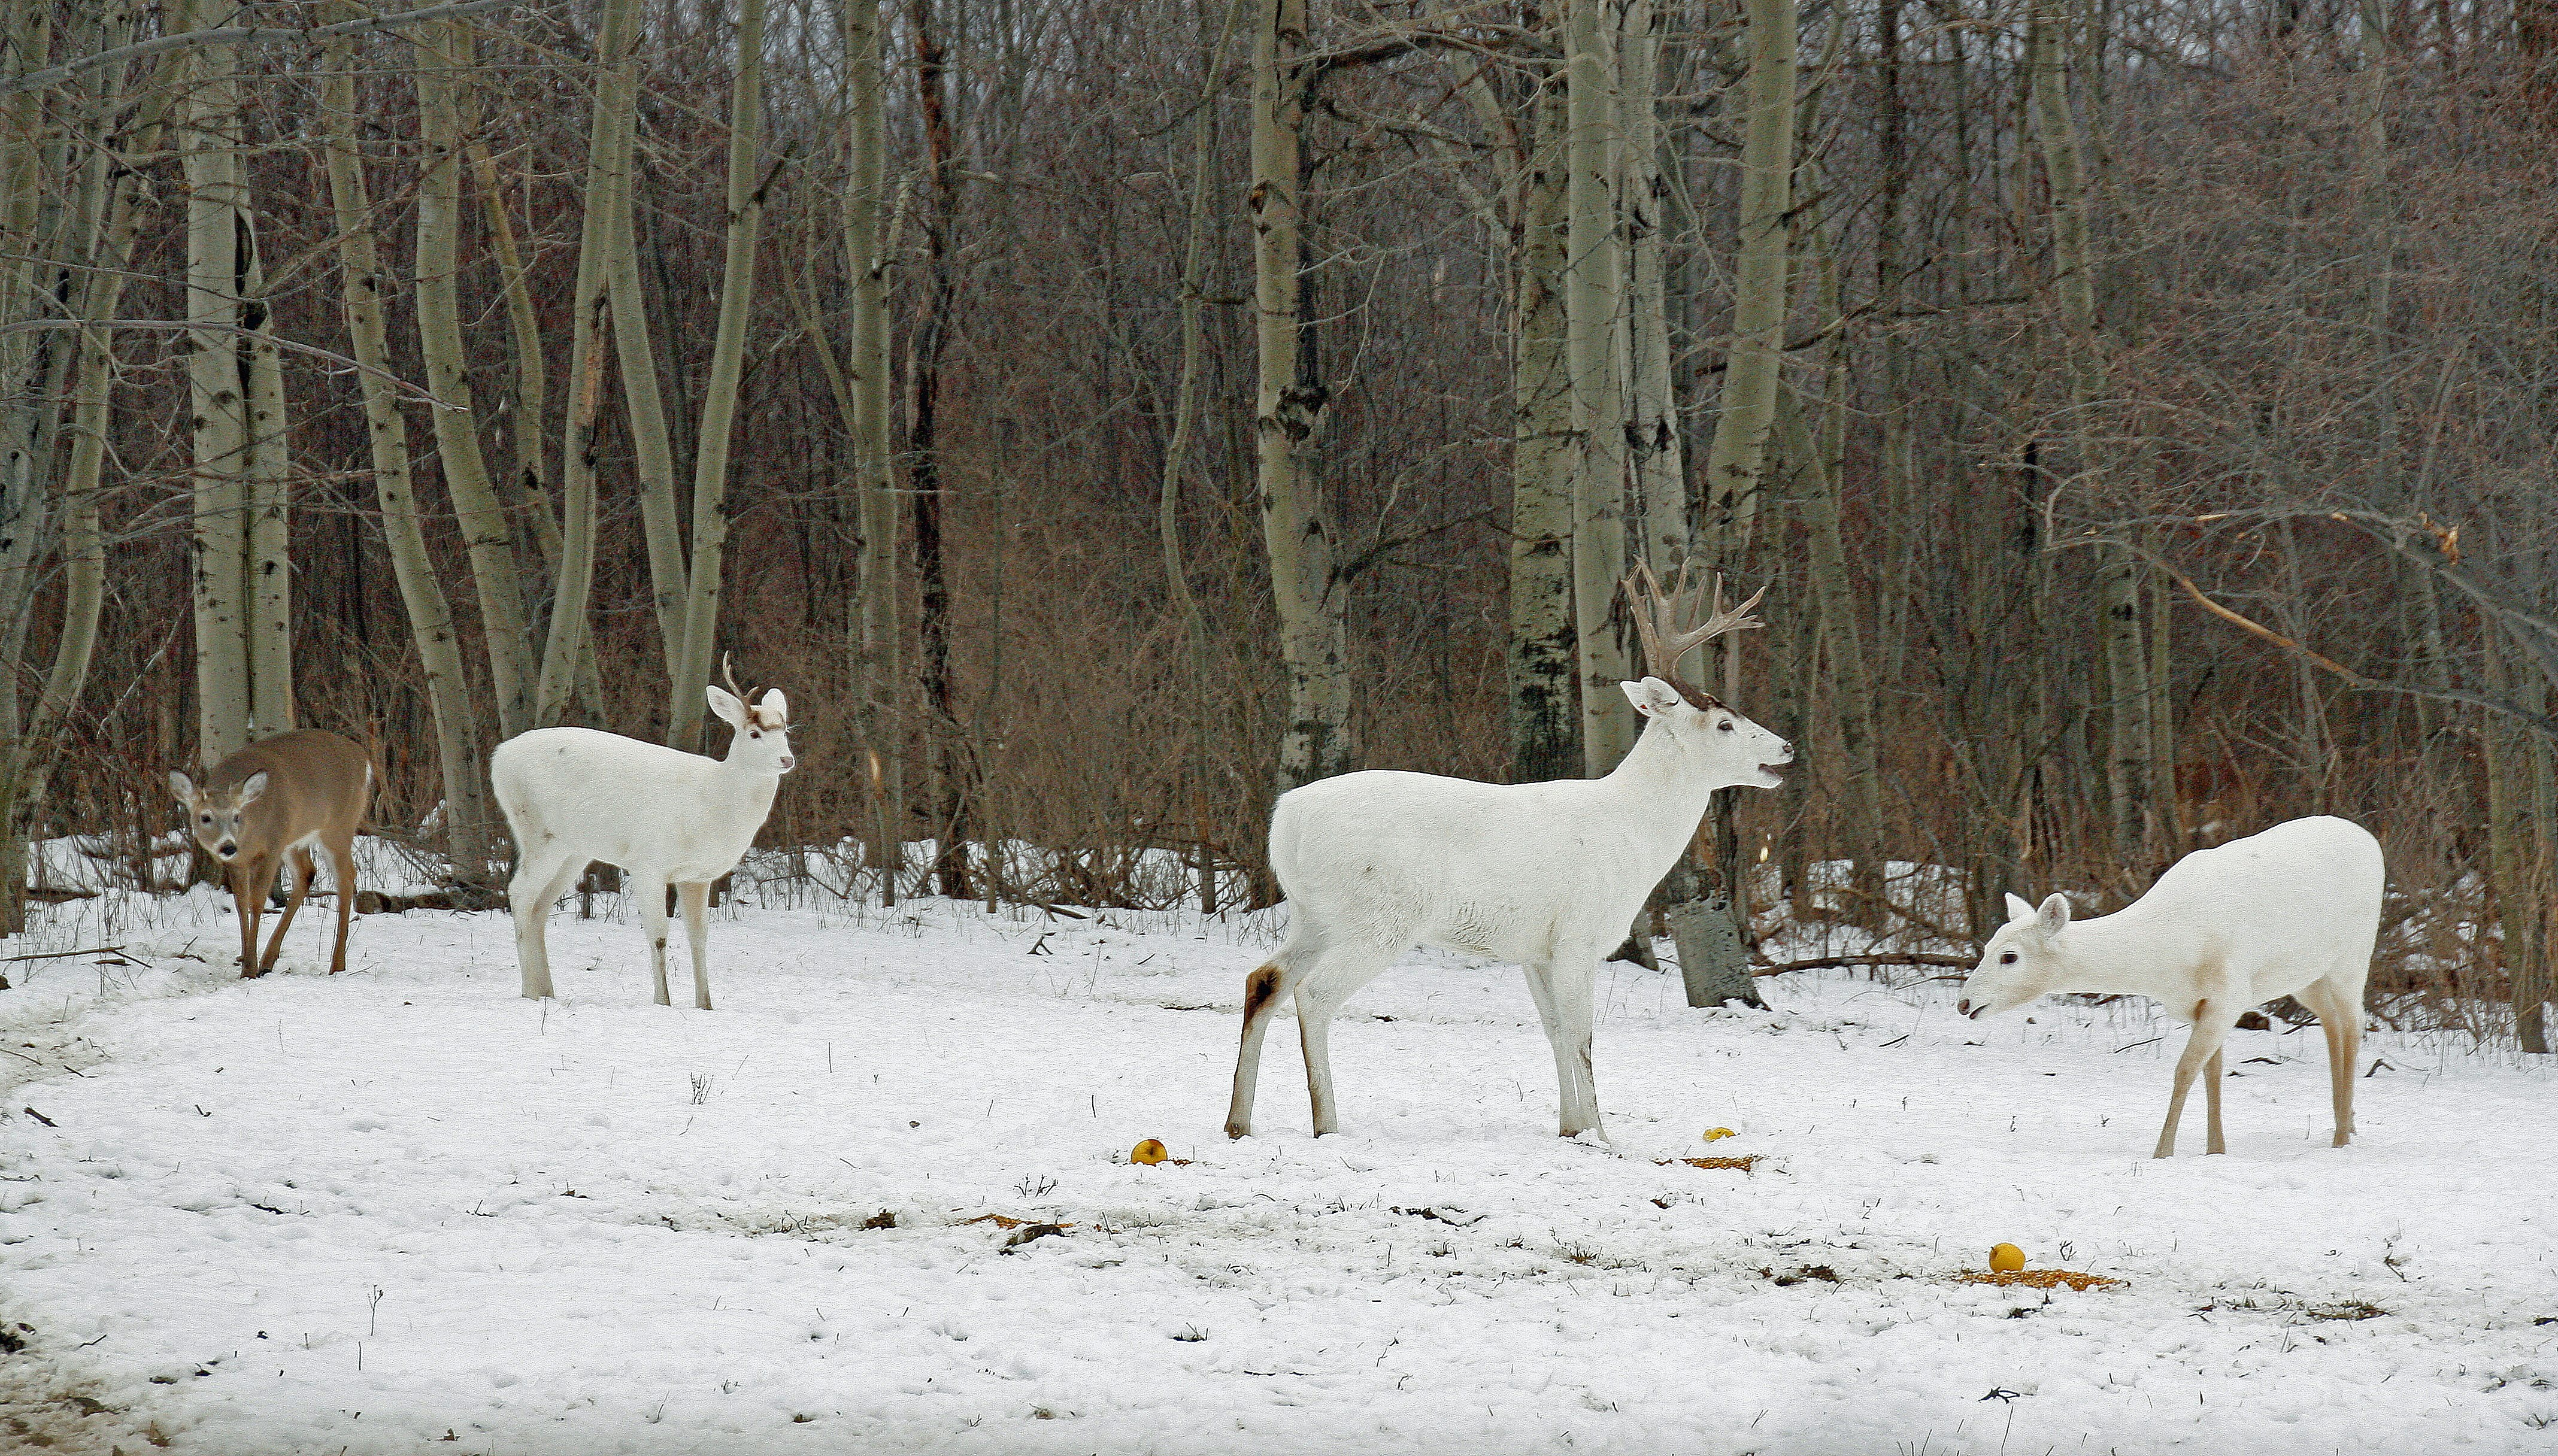 A herd of white deer in Seneca County could be in danger of death and disbursal, if high-fenced lands are opened to agriculture and commerce.